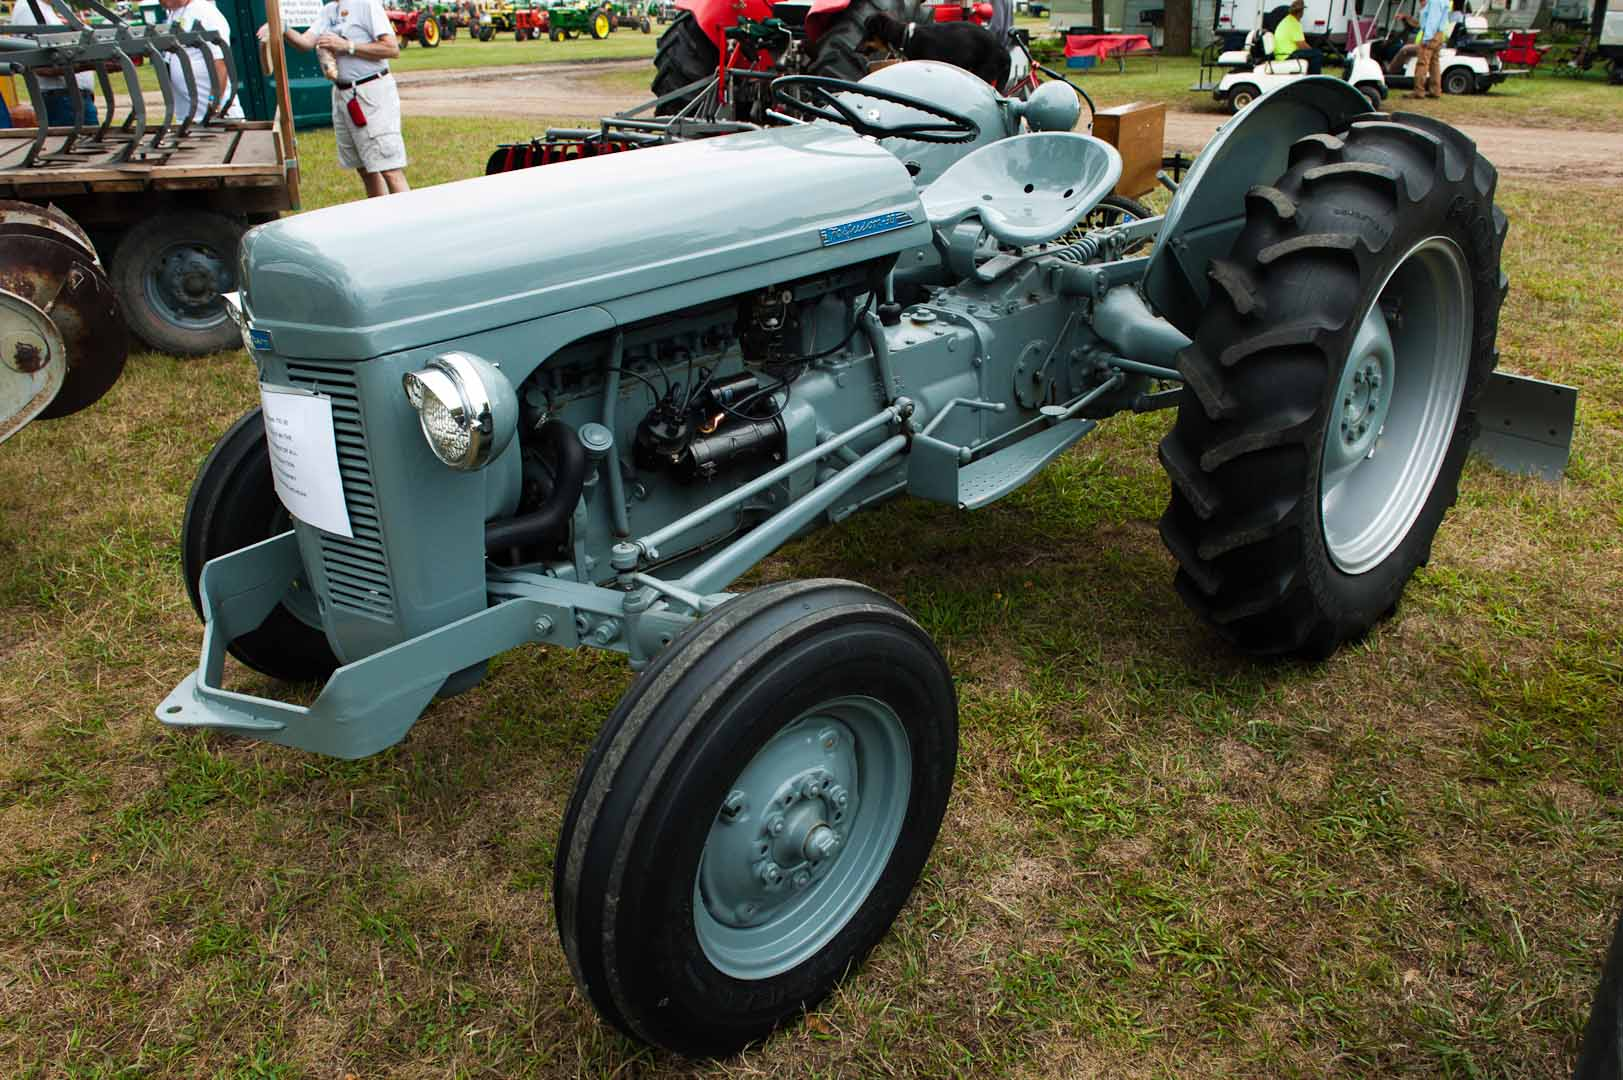 1954 TO-30 owned by Richard Downey of Coldwater, MI. SN TO-137777.